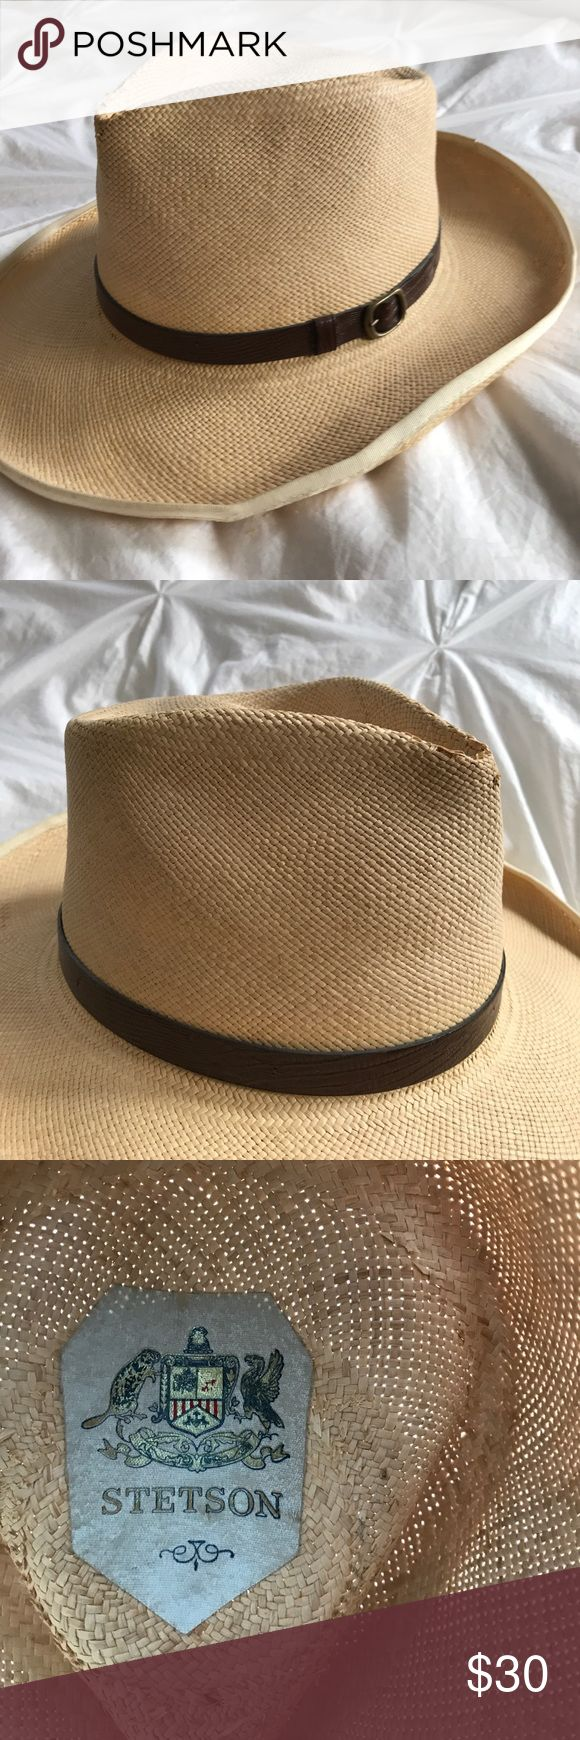 Women's STETSON straw hat size M. Beautiful authentic Stetson straw hat. Slight fraying in small spot on top. Minor wear at interior. Stetson Accessories Hats